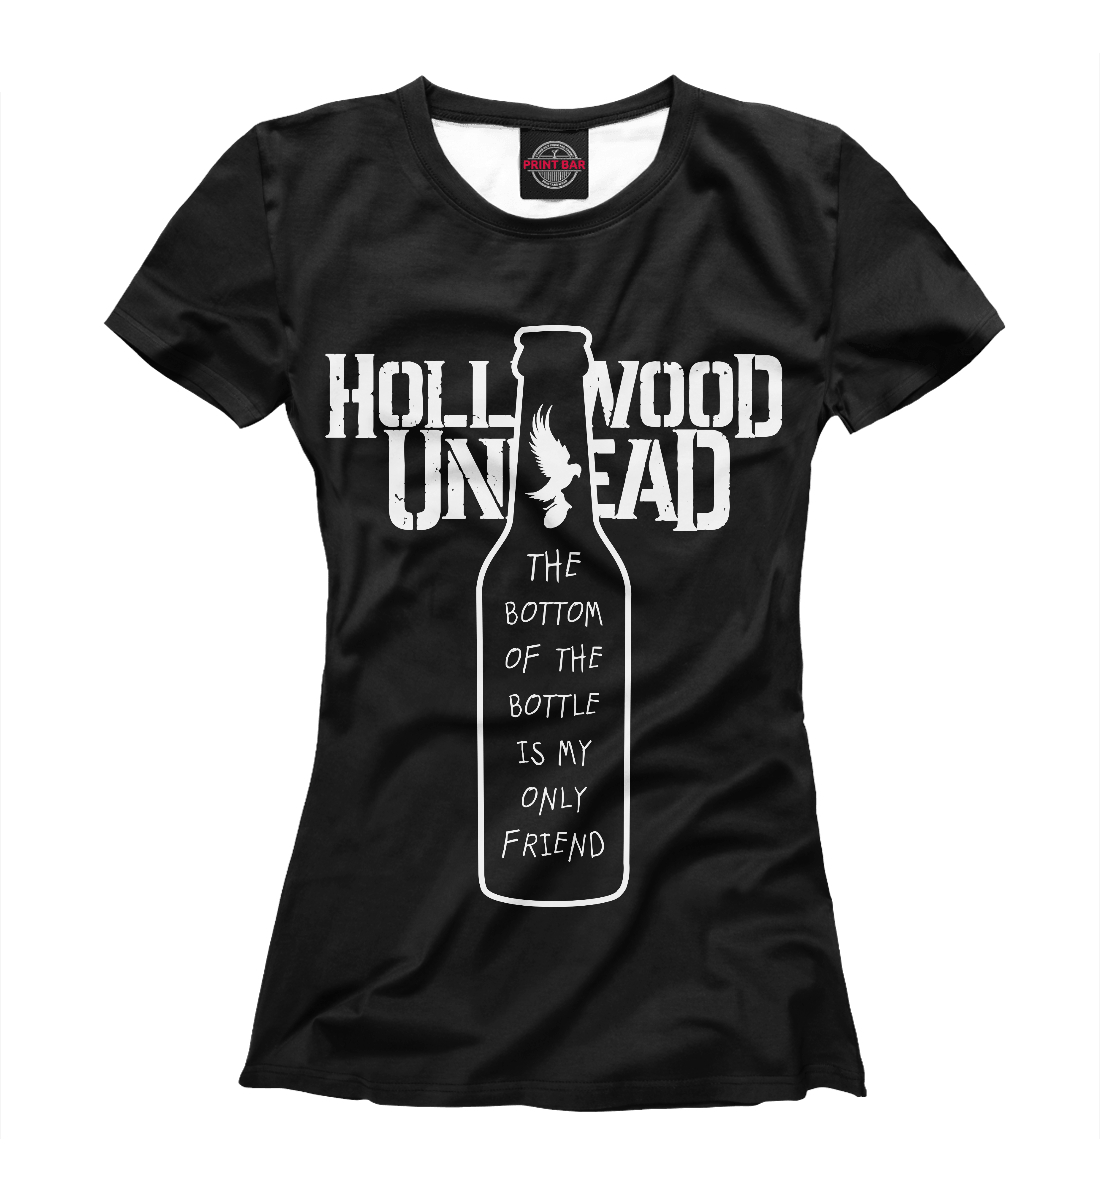 Купить Hollywood Undead Bullet lyrics, Printbar, Футболки, HLW-460040-fut-1